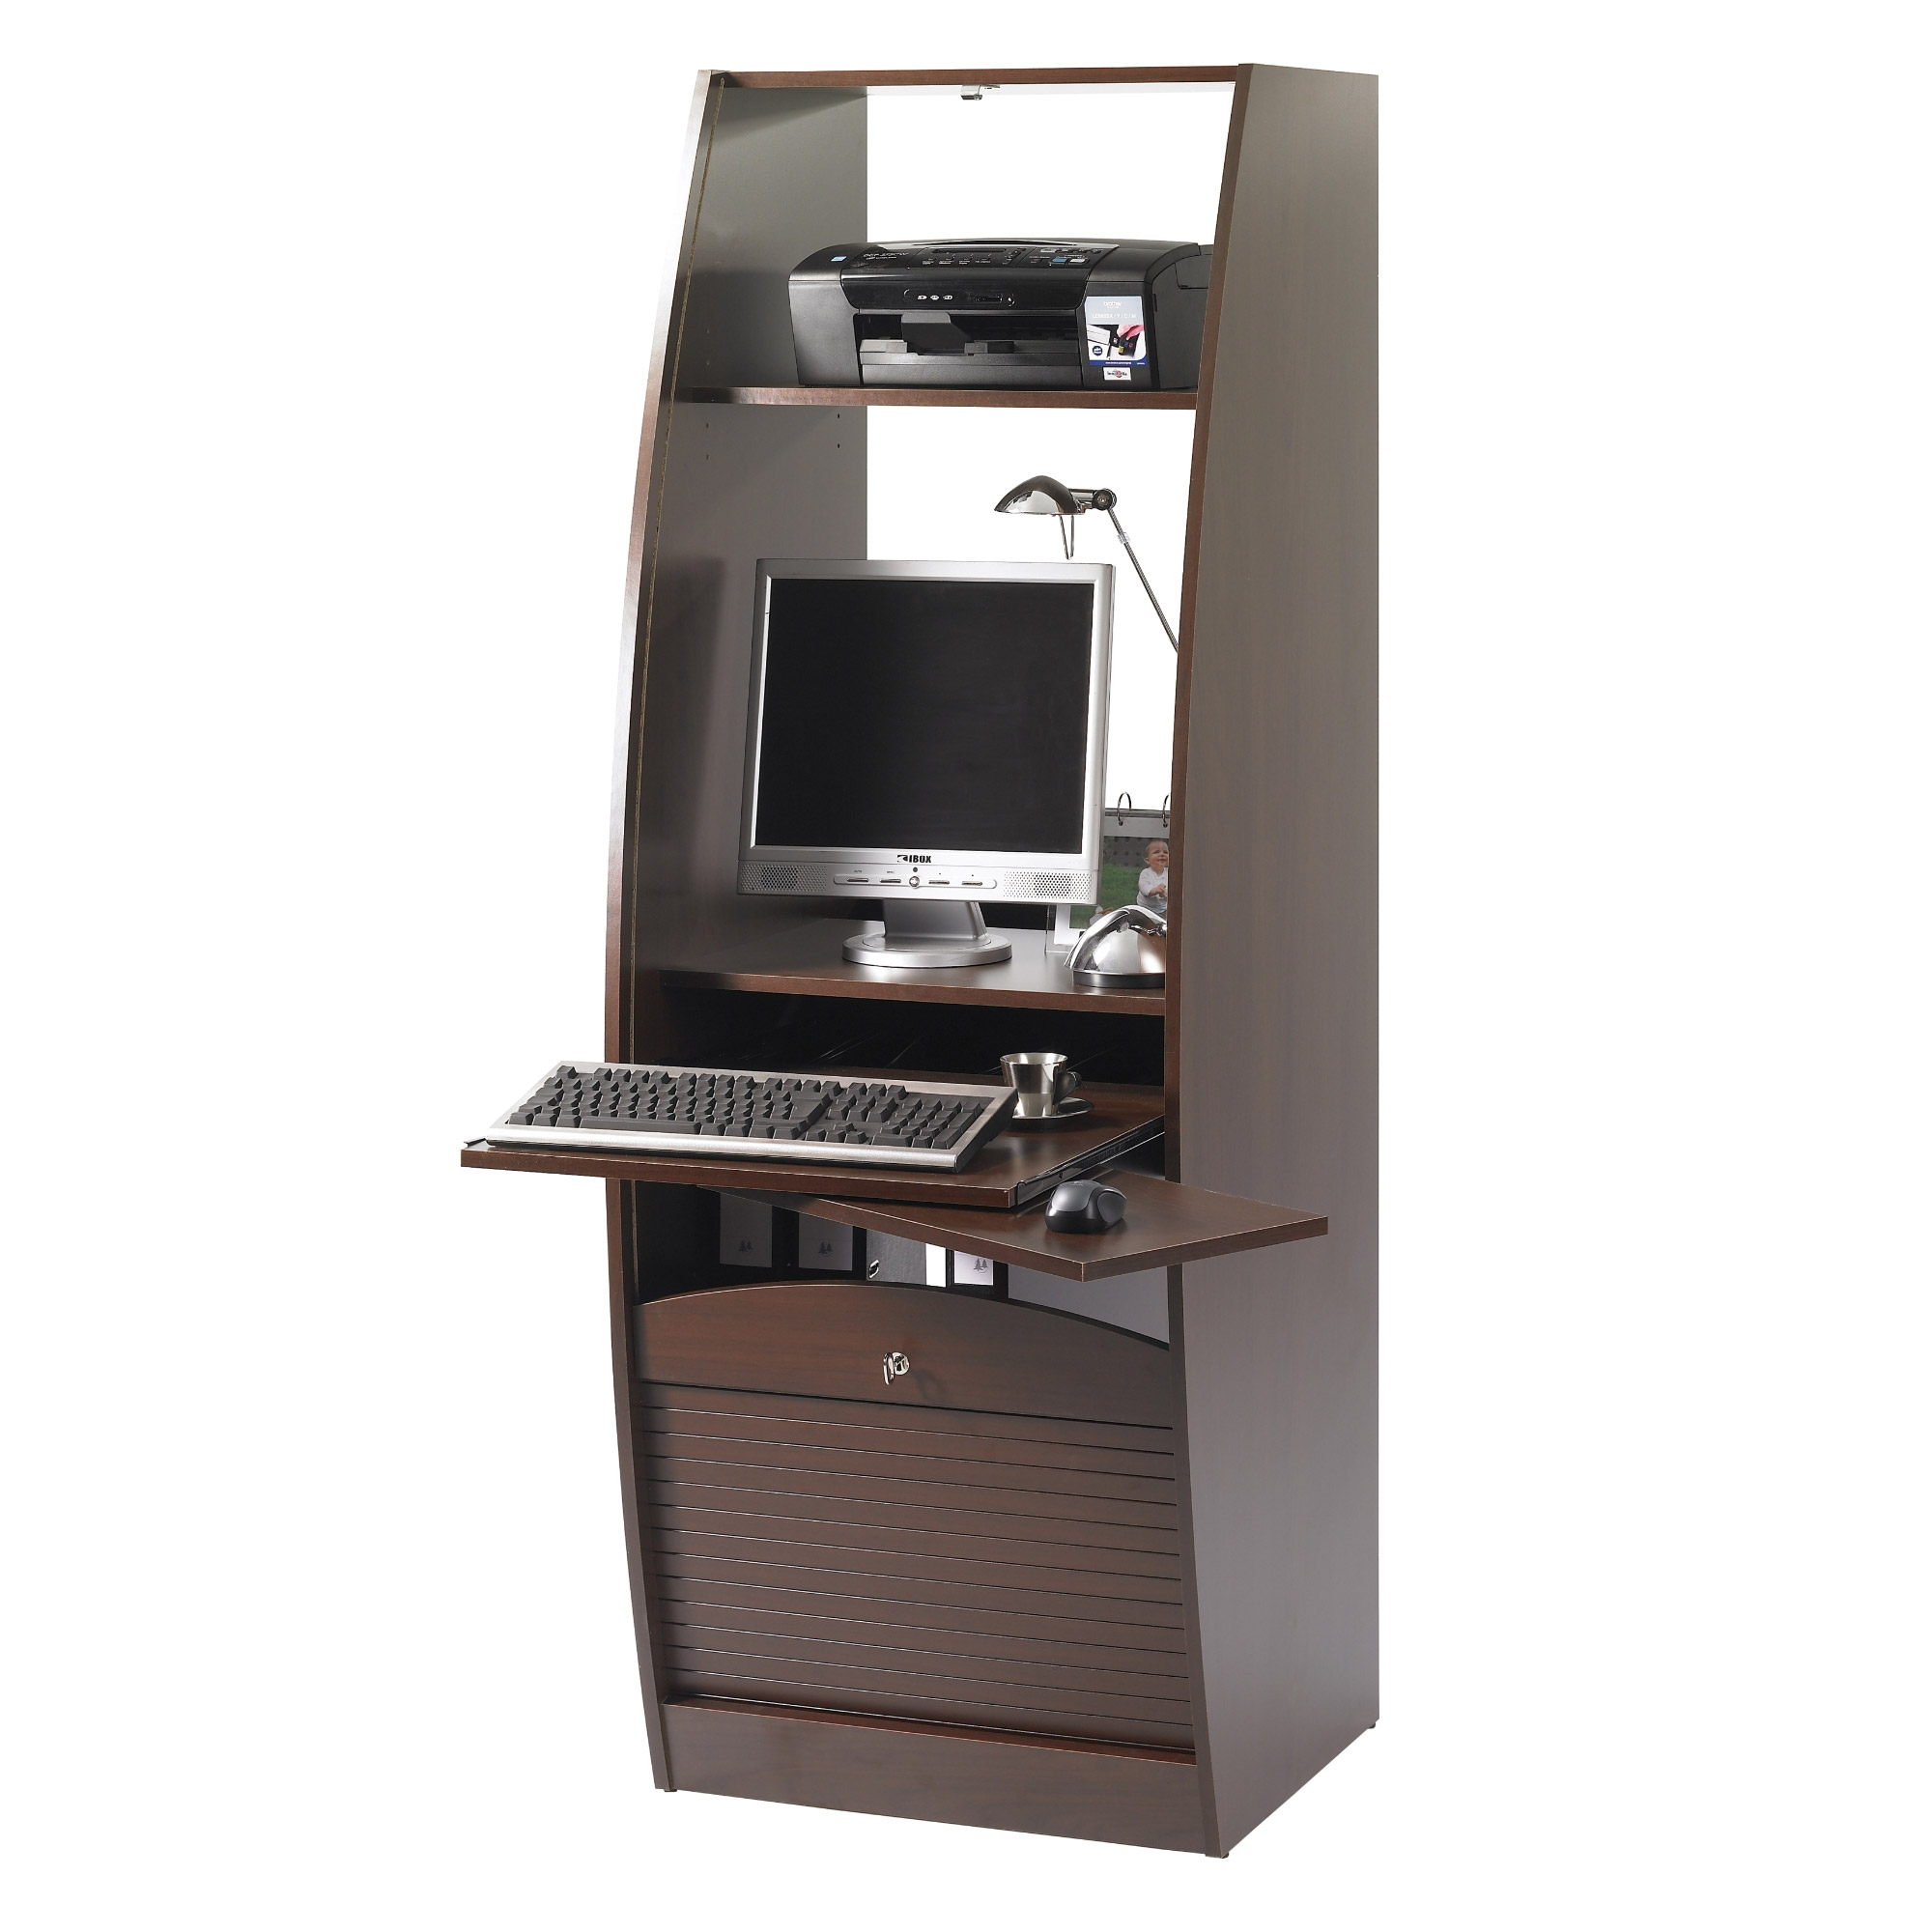 Armoire informatique marron 60 cm paris 572 for Bureau 60 cm de longueur